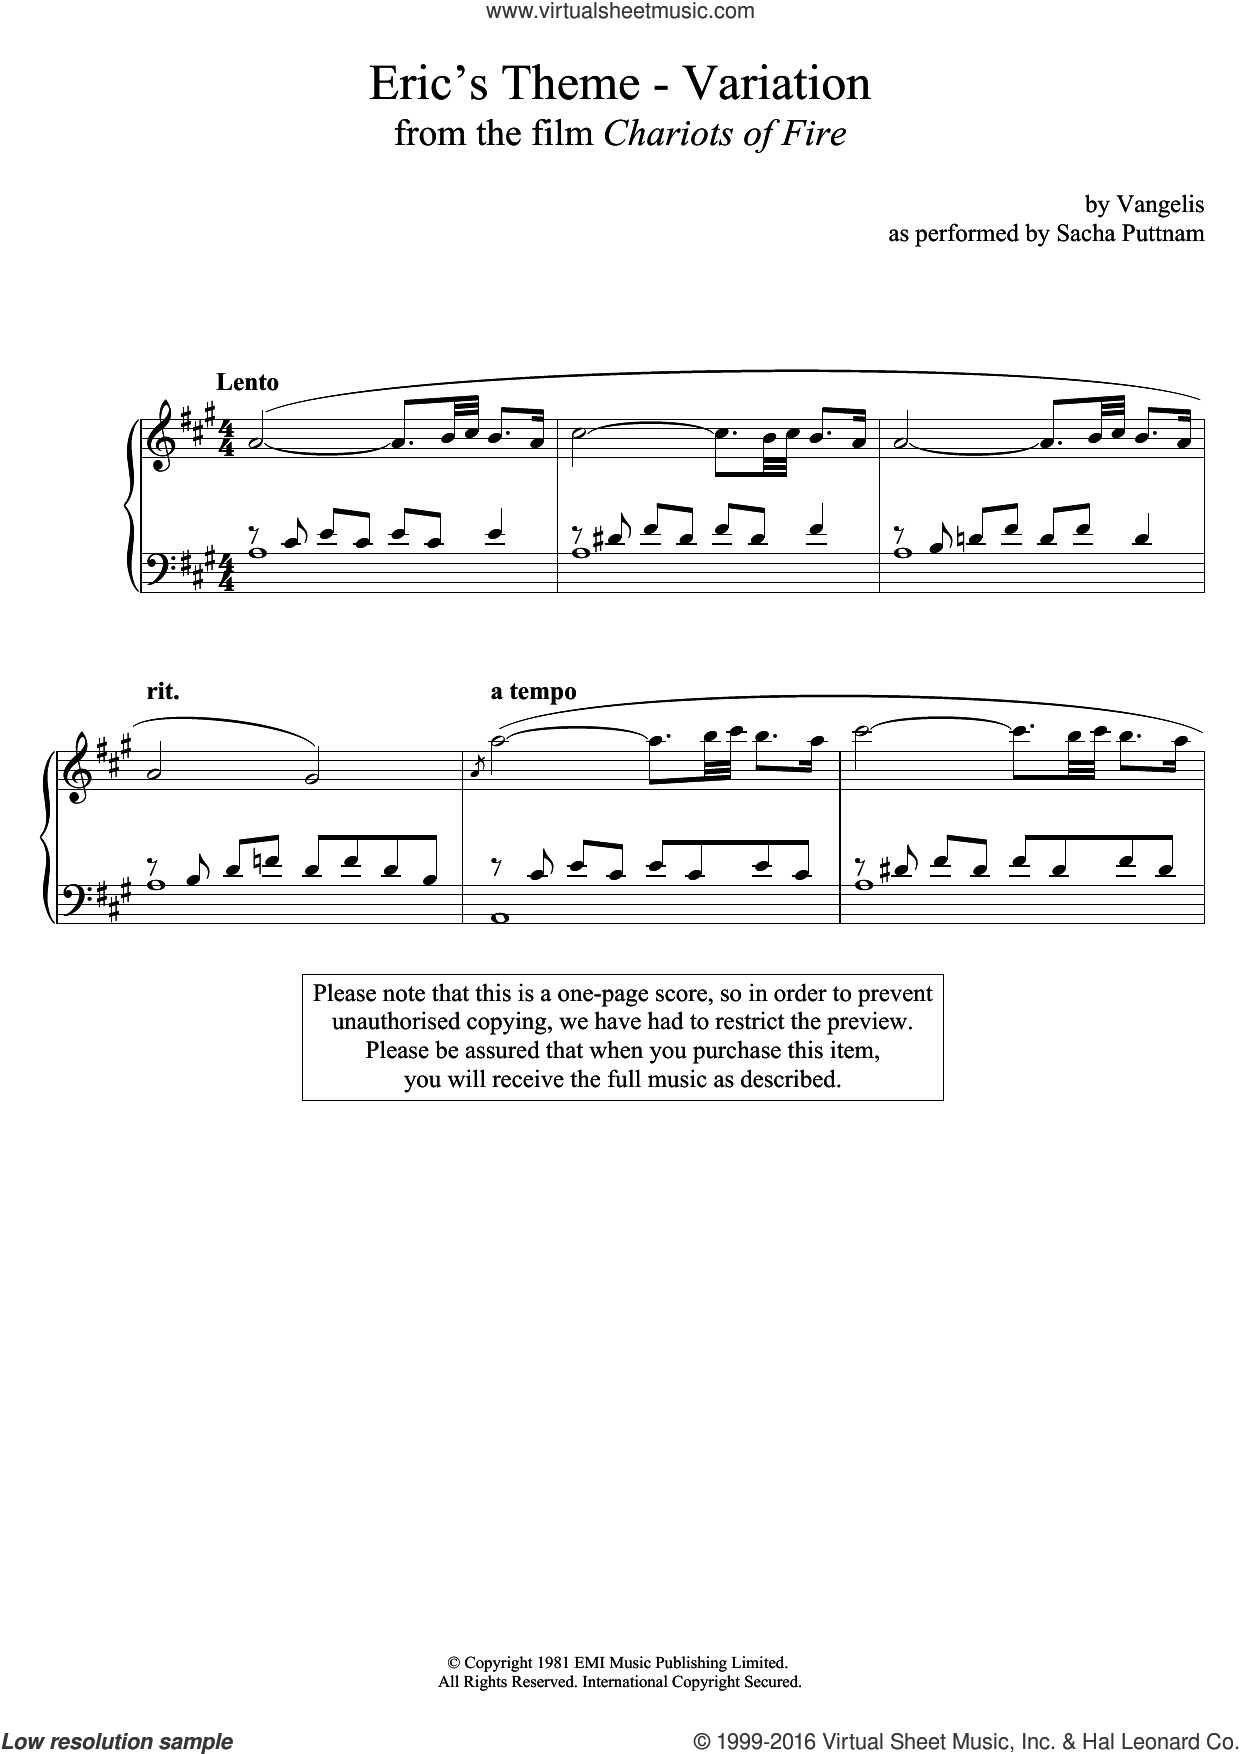 Eric's Theme- Variation (From Chariots Of Fire) (as performed by Sacha Puttnam) sheet music for piano solo by Vangelis and Sacha Puttnam, intermediate skill level